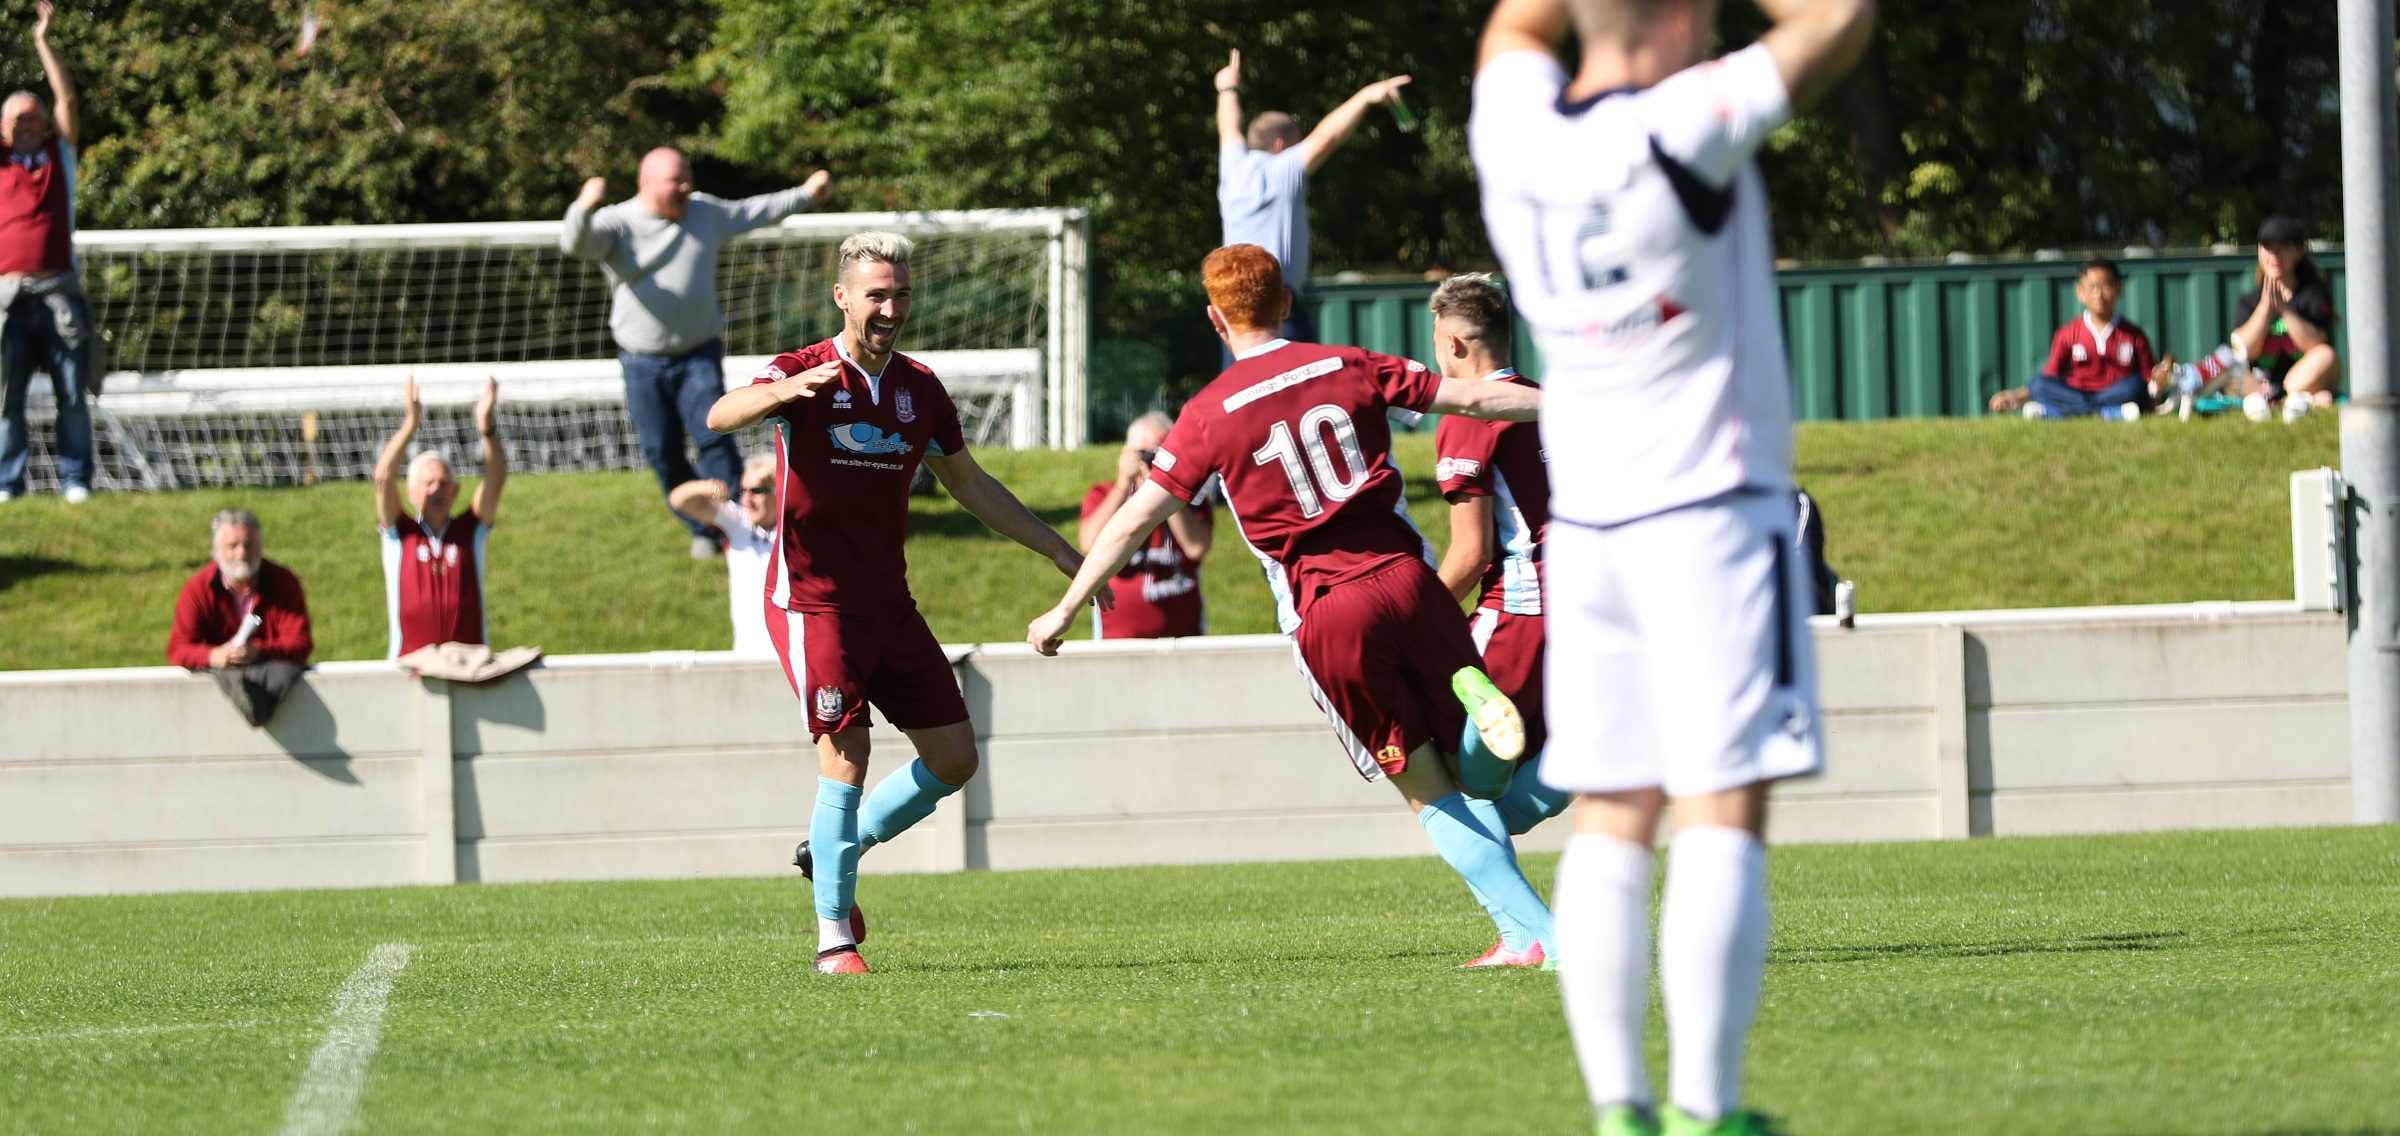 Trafford 1-2 South Shields: Tough win on opening day for Mariners